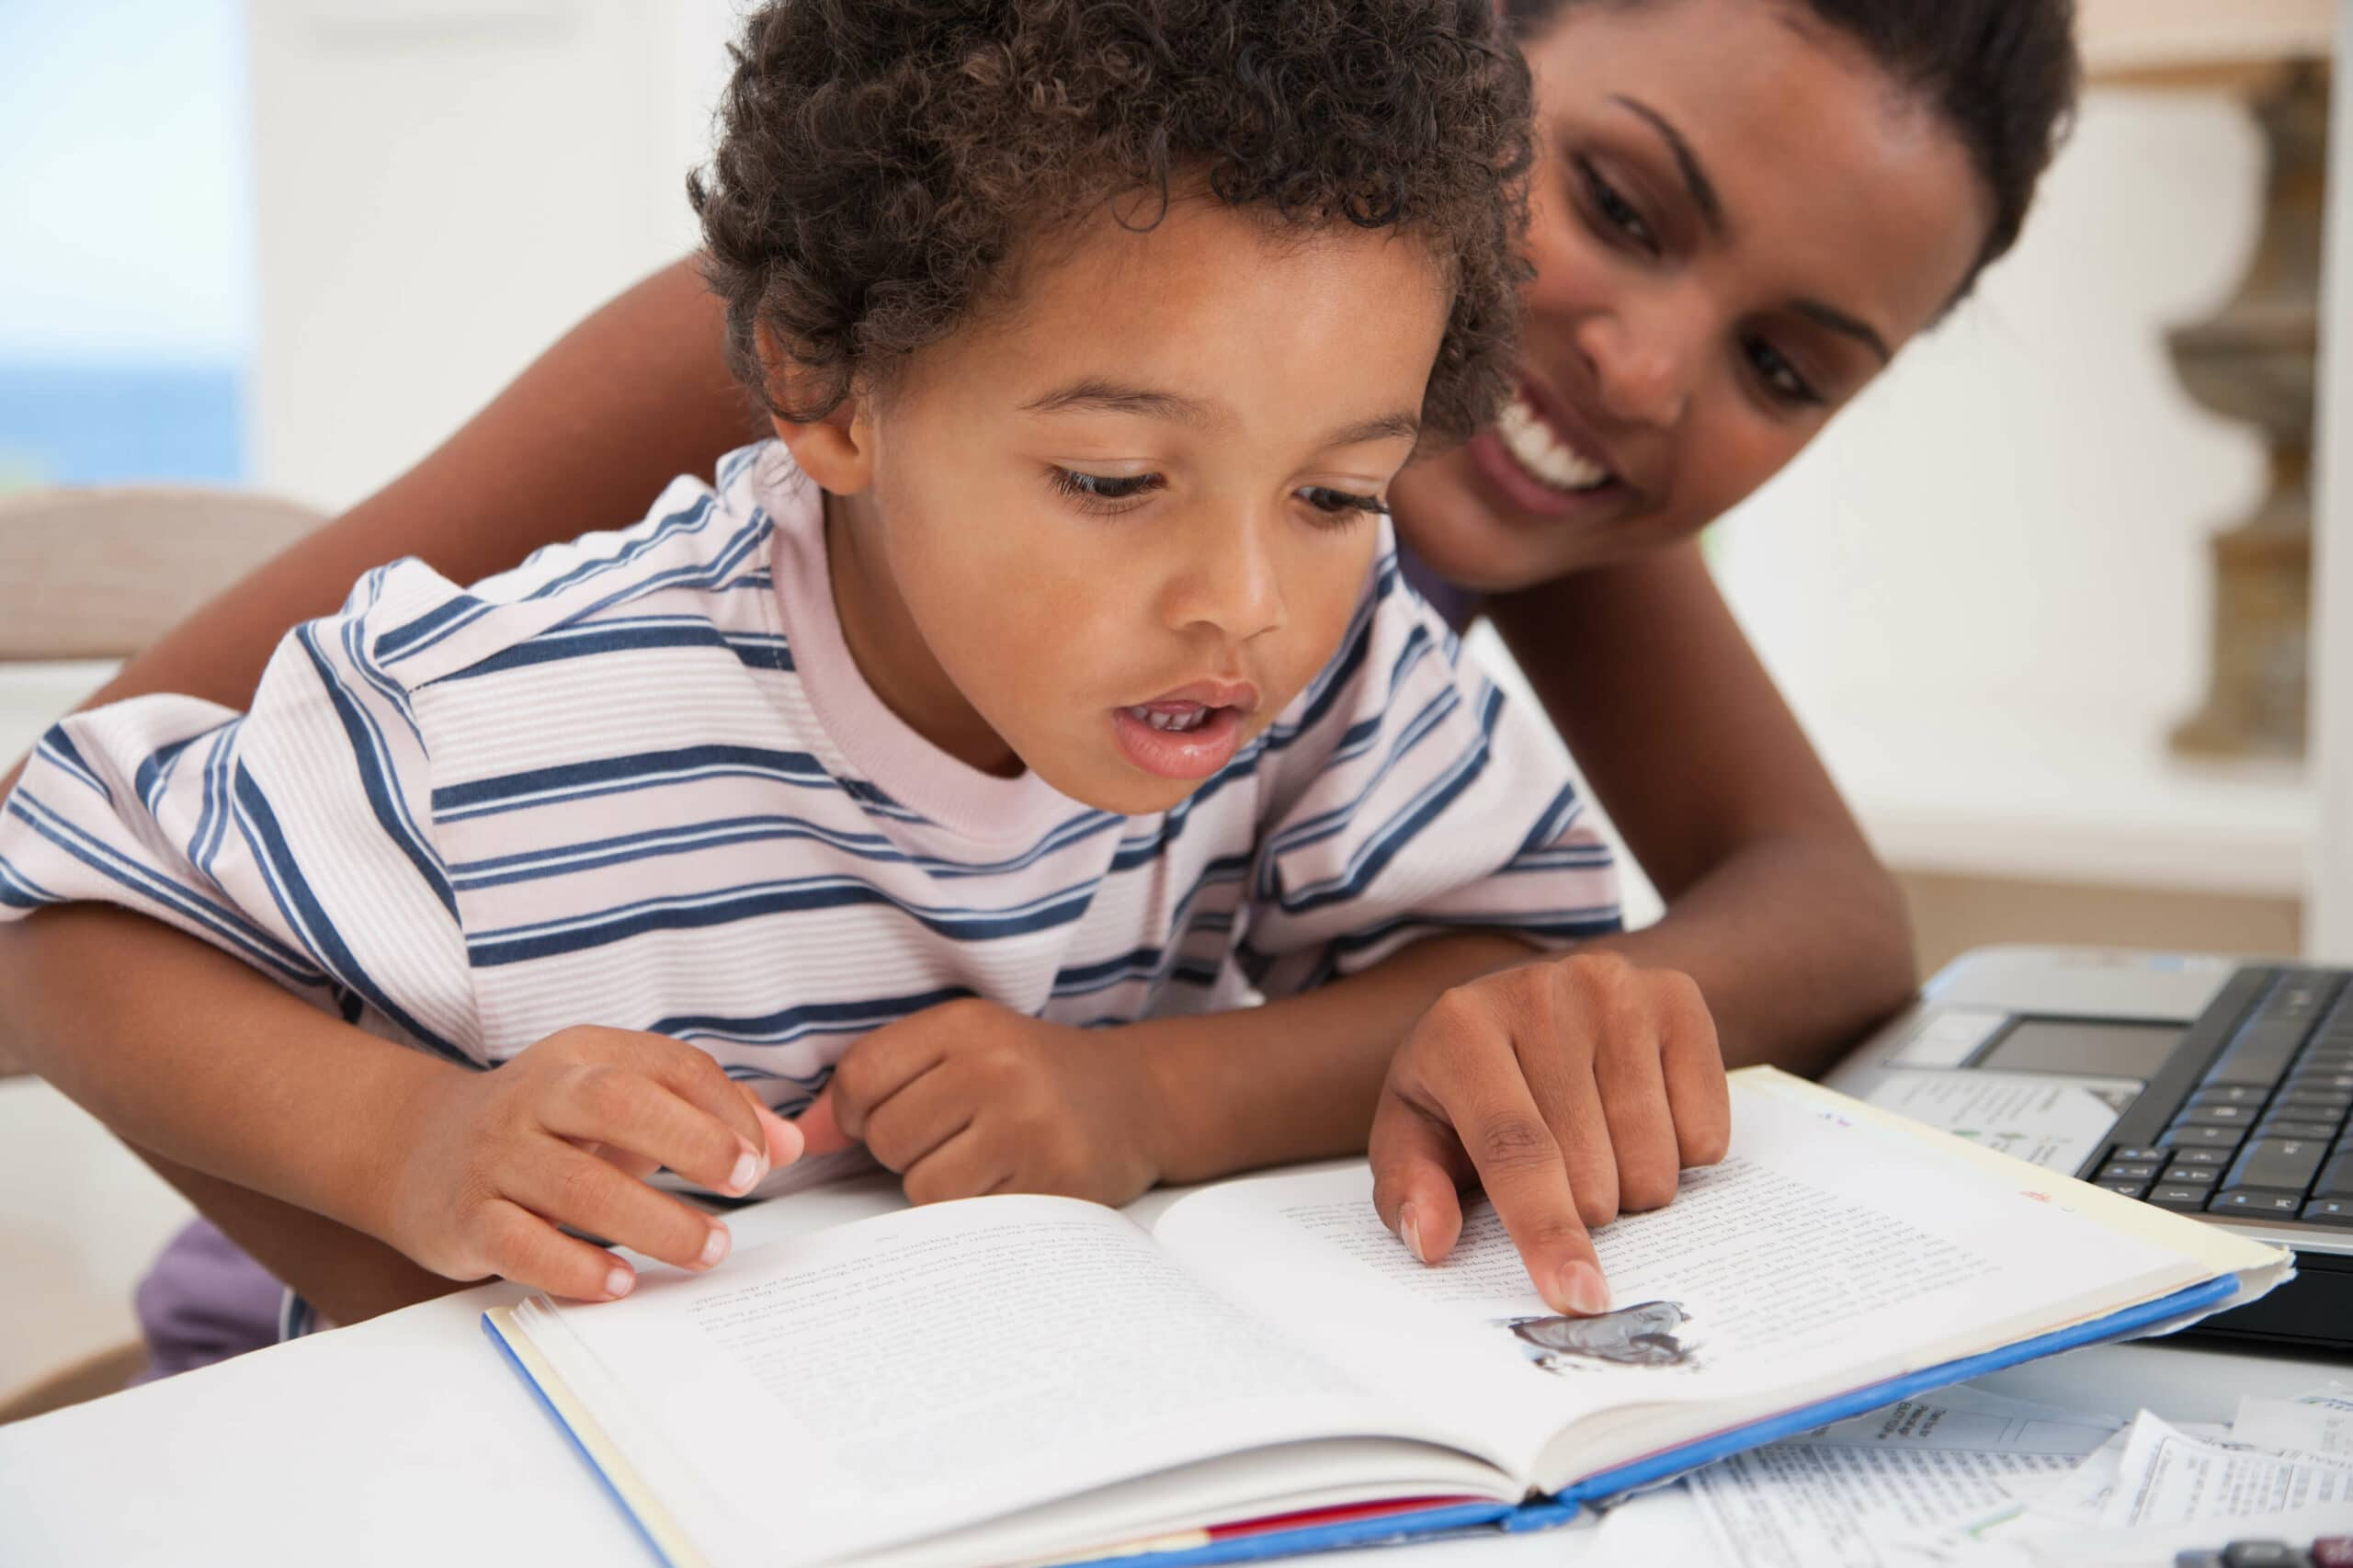 Should My Child Be Able to Read Before Kindergarten?